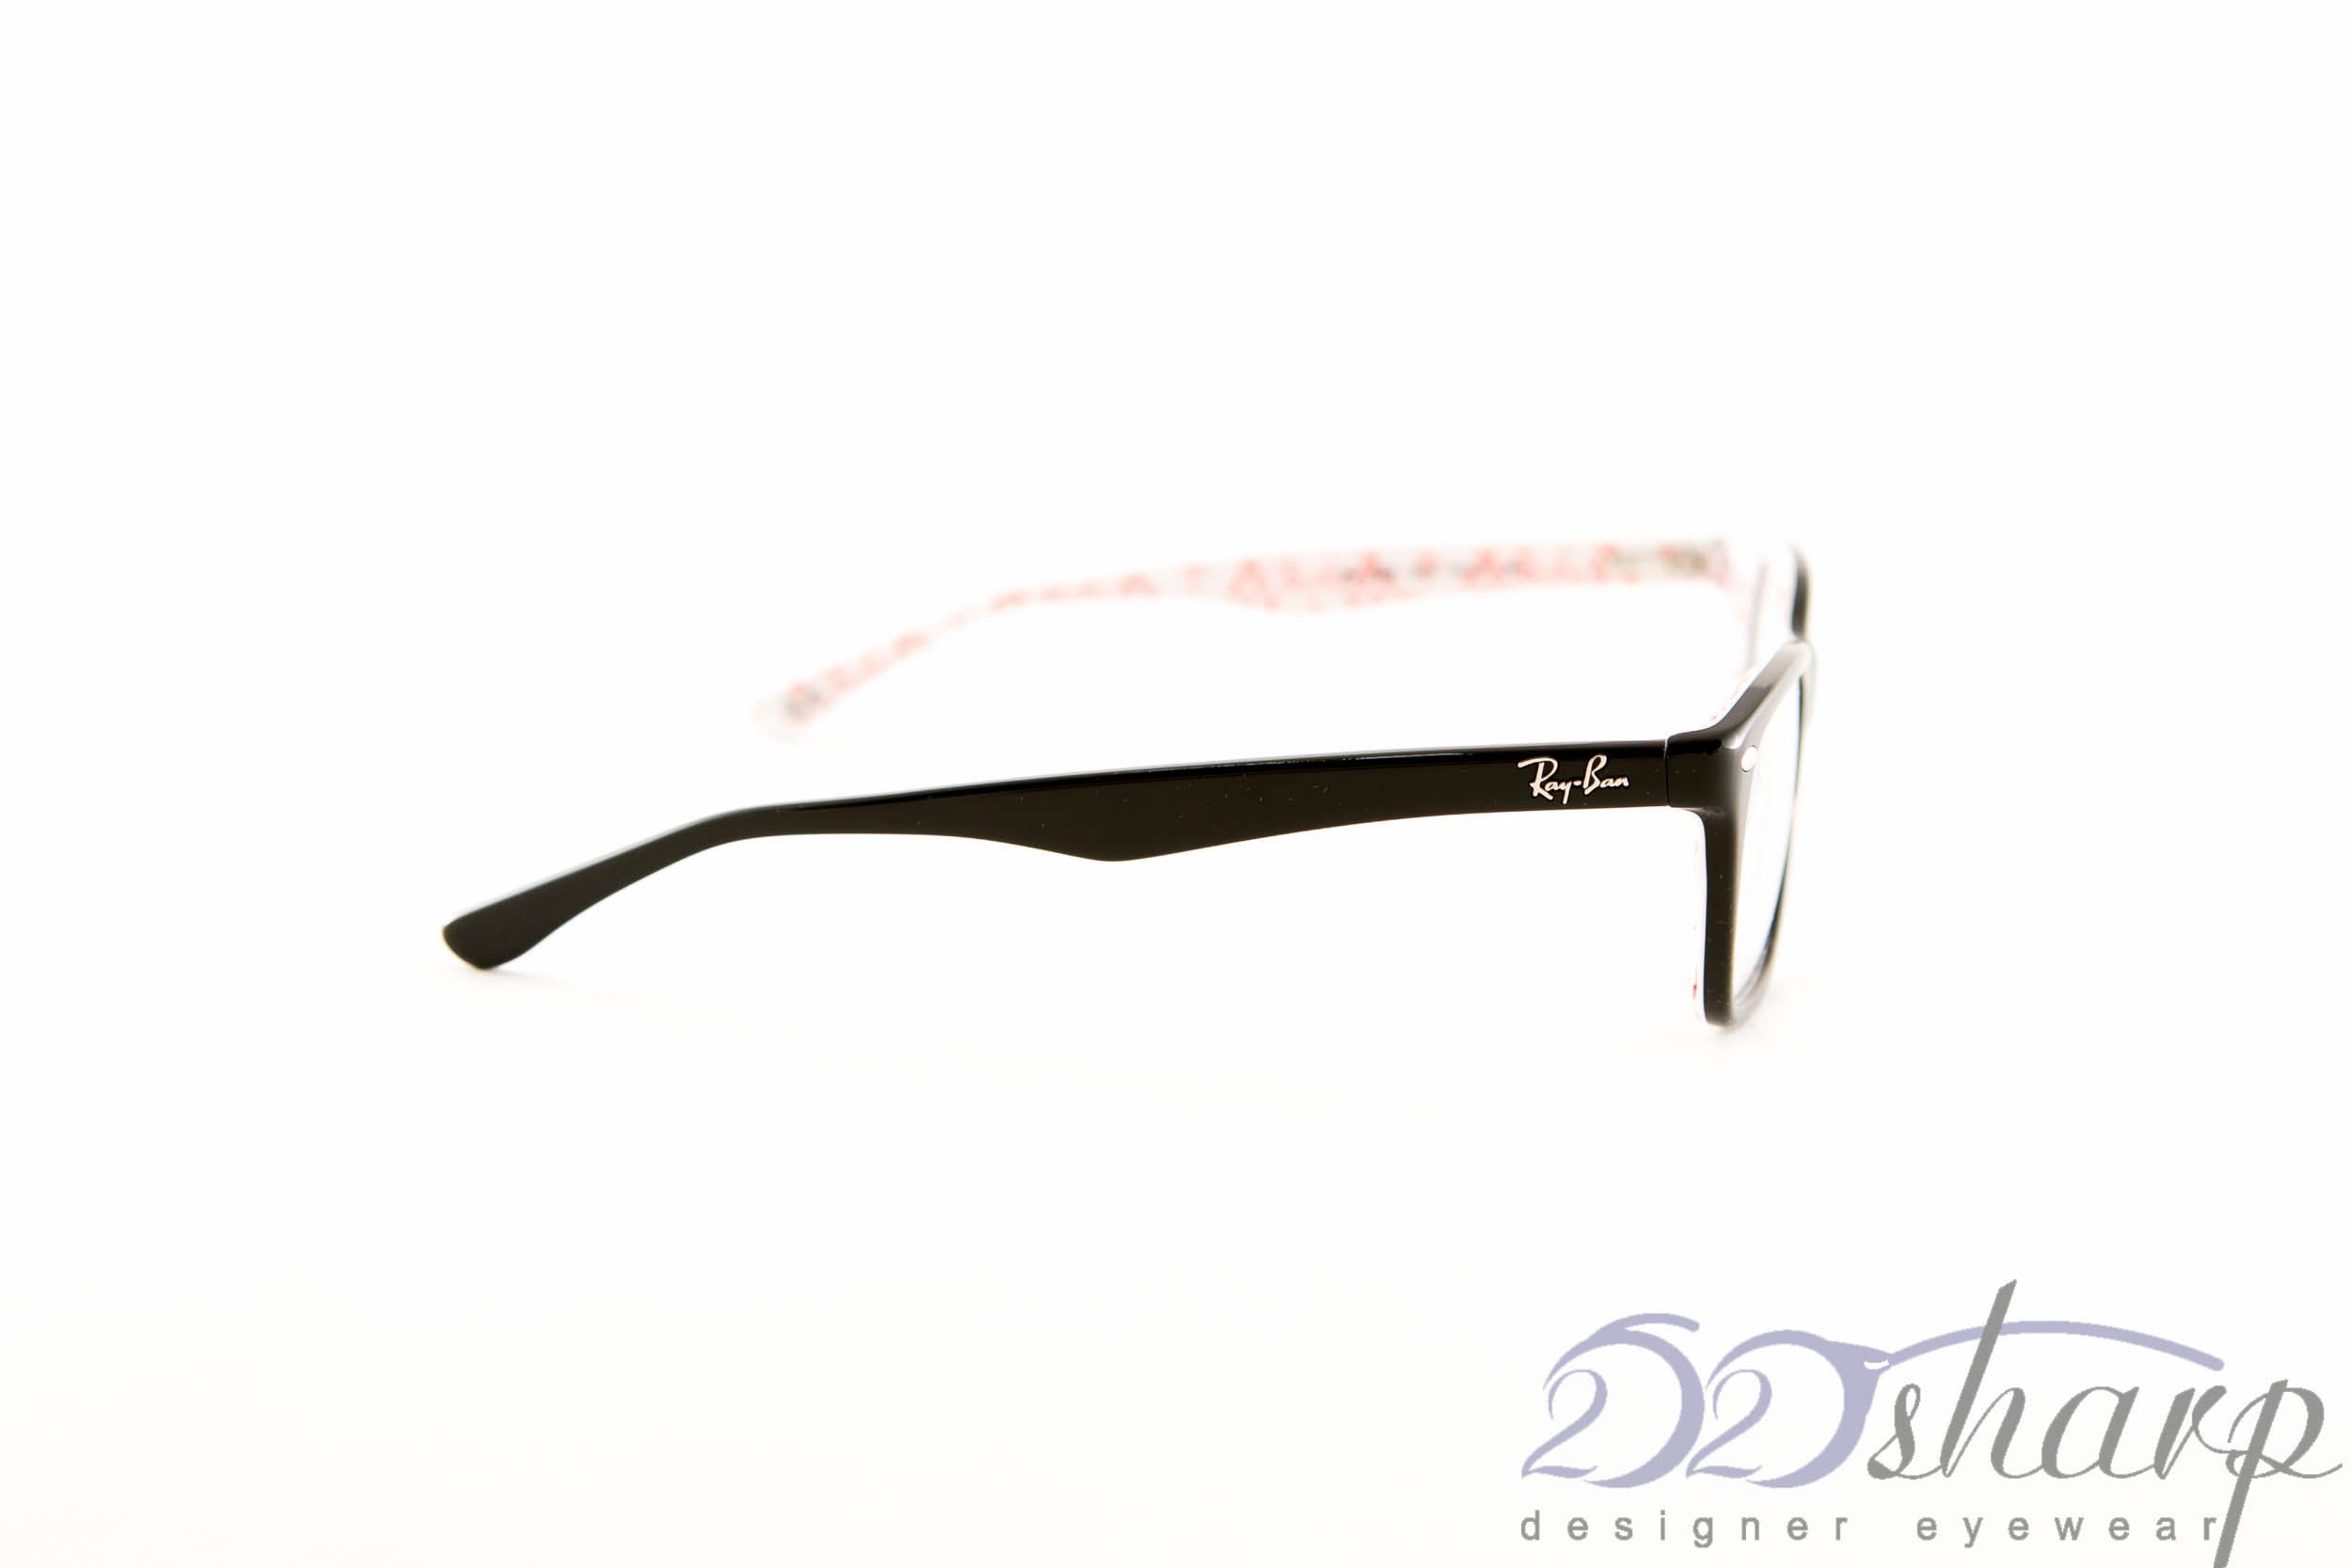 235a973fee58 How To Fix Ray Ban Scratched Lens Coating For Glasses « Heritage Malta